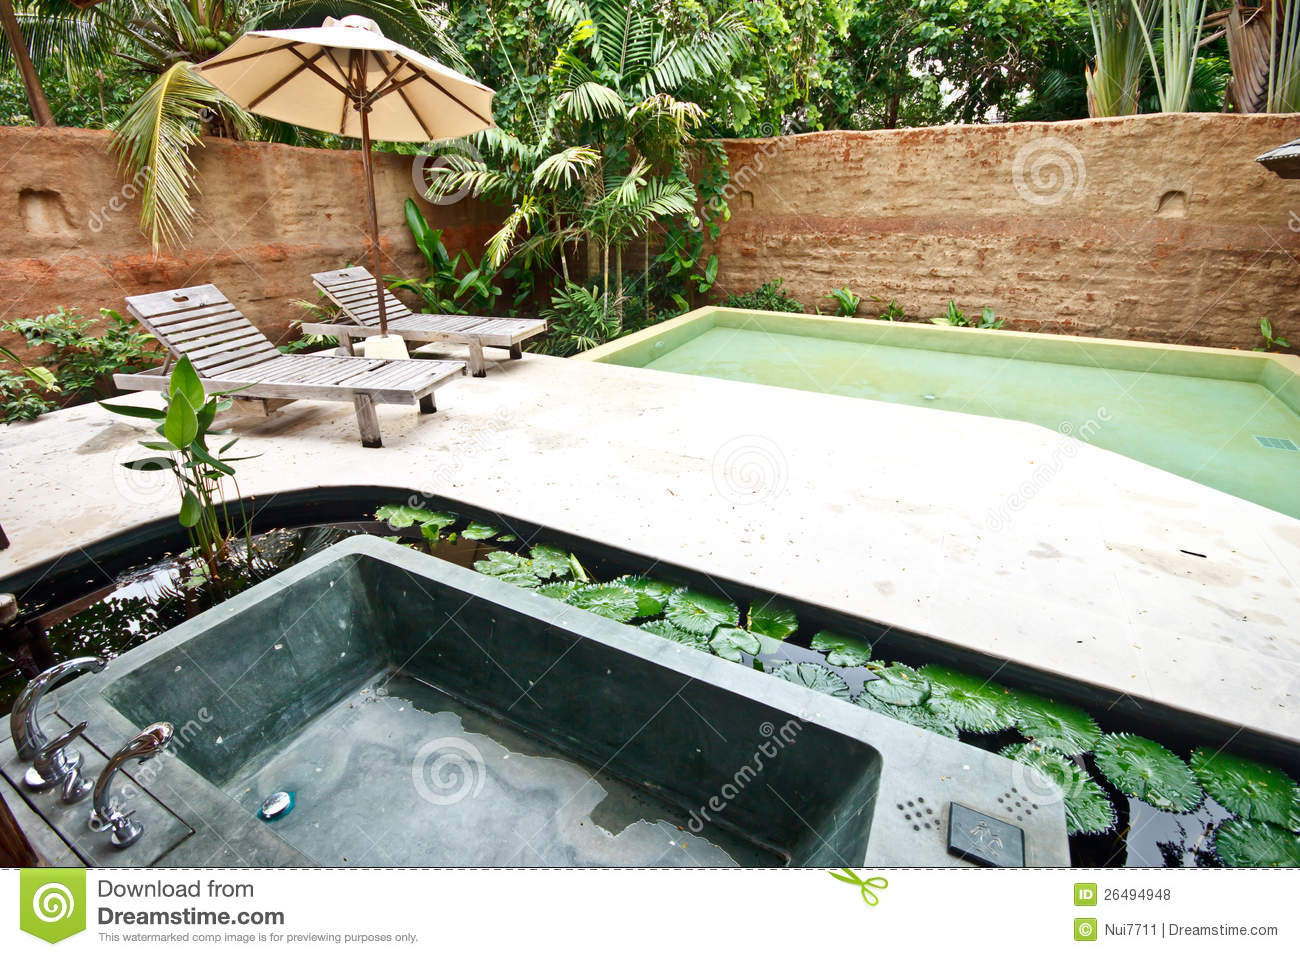 outdoor jacuzzi bathtub in garden 3 royalty free stock photos image 26494948. Black Bedroom Furniture Sets. Home Design Ideas